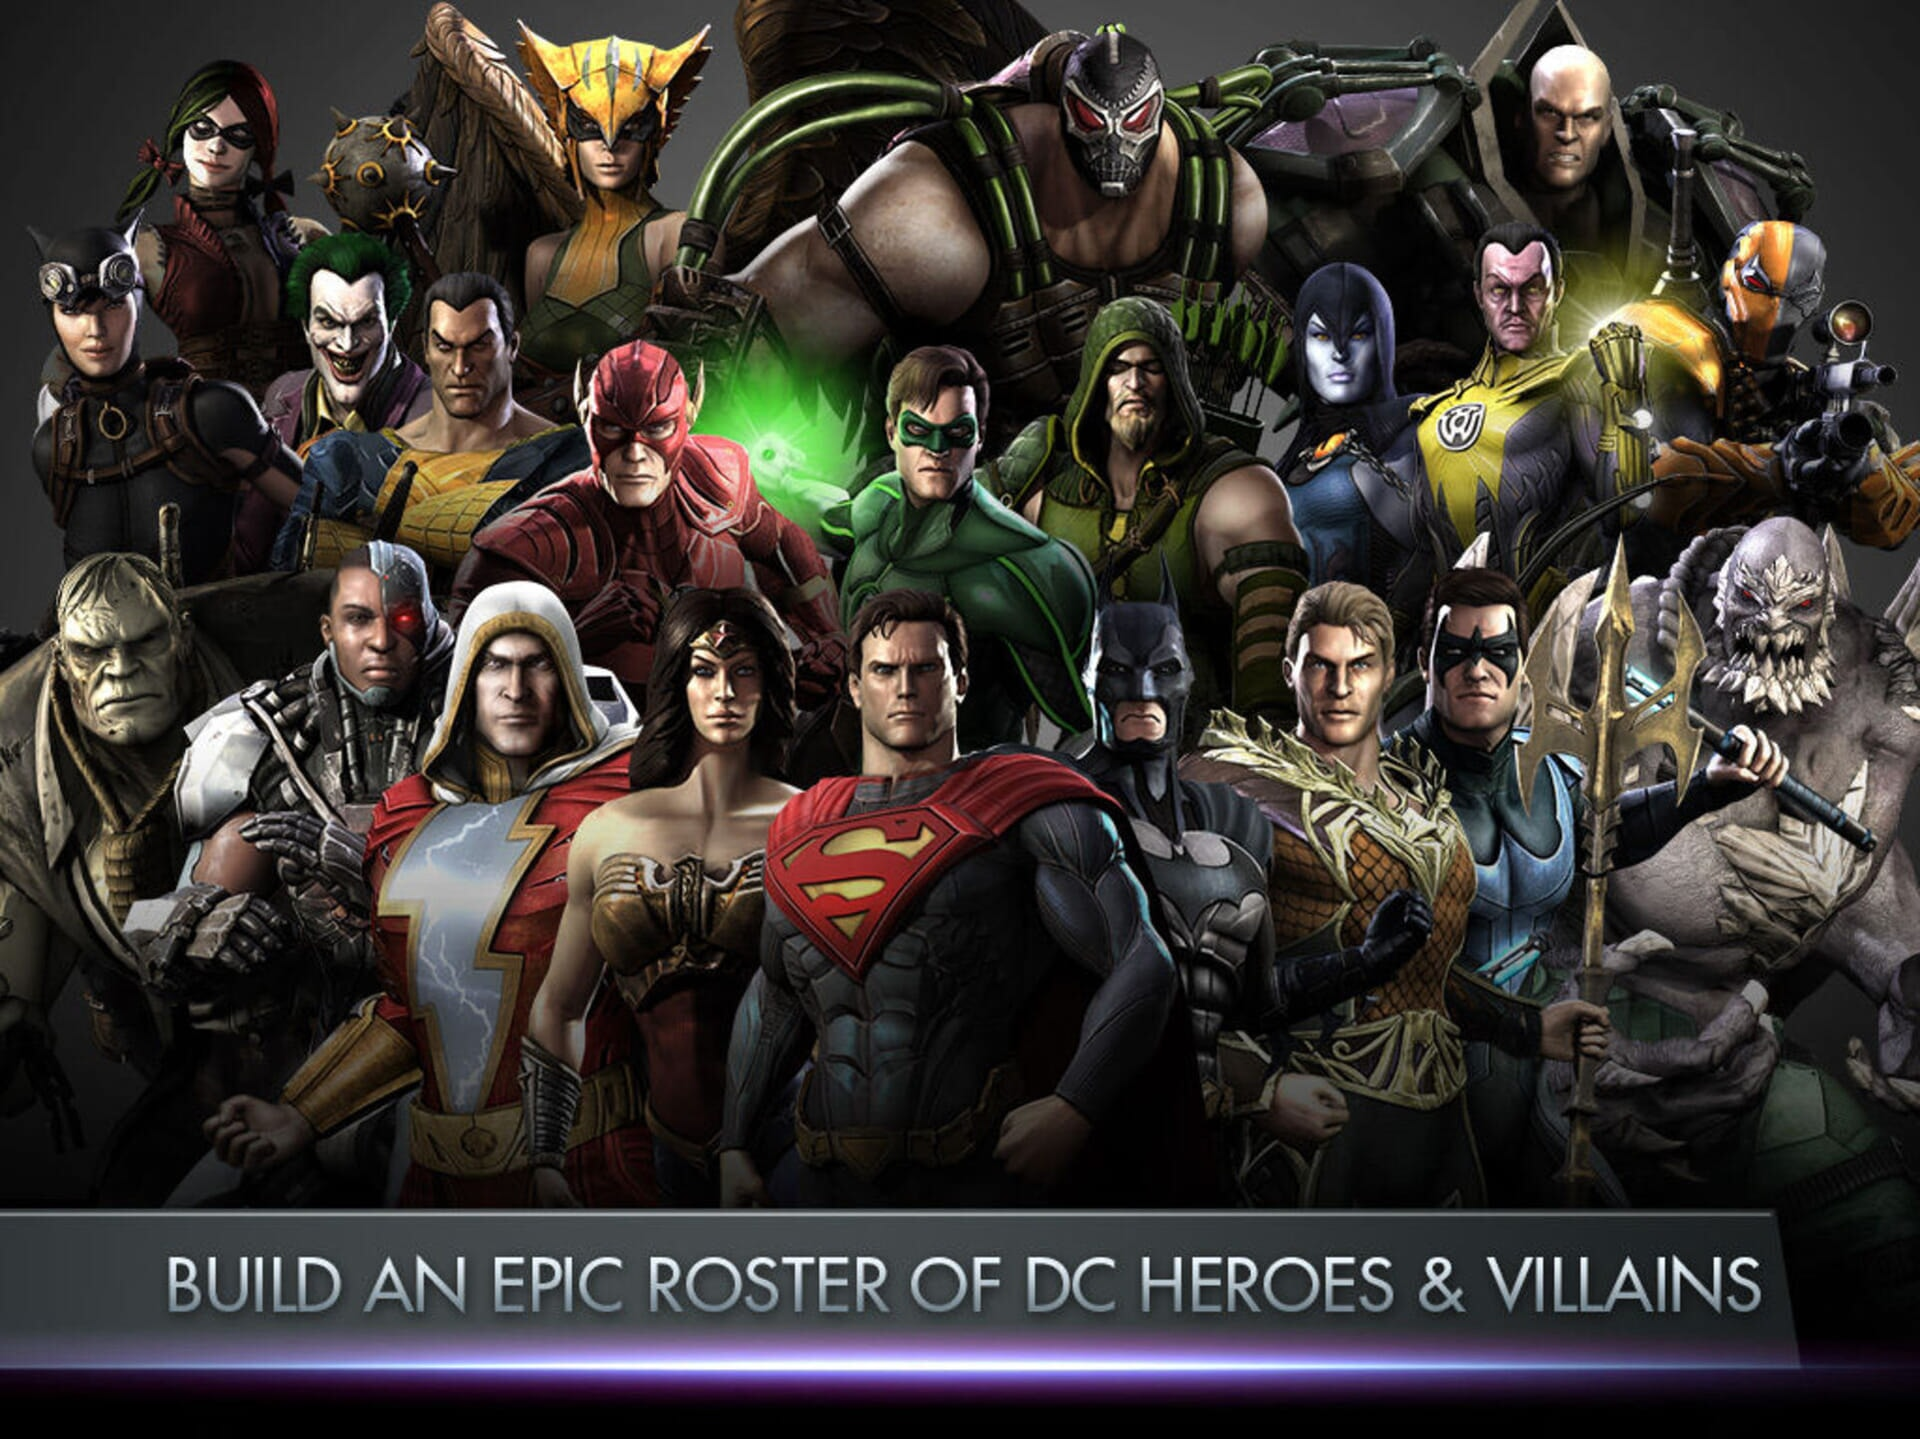 WarnerBros com | Injustice: Gods Among Us | Games and Apps